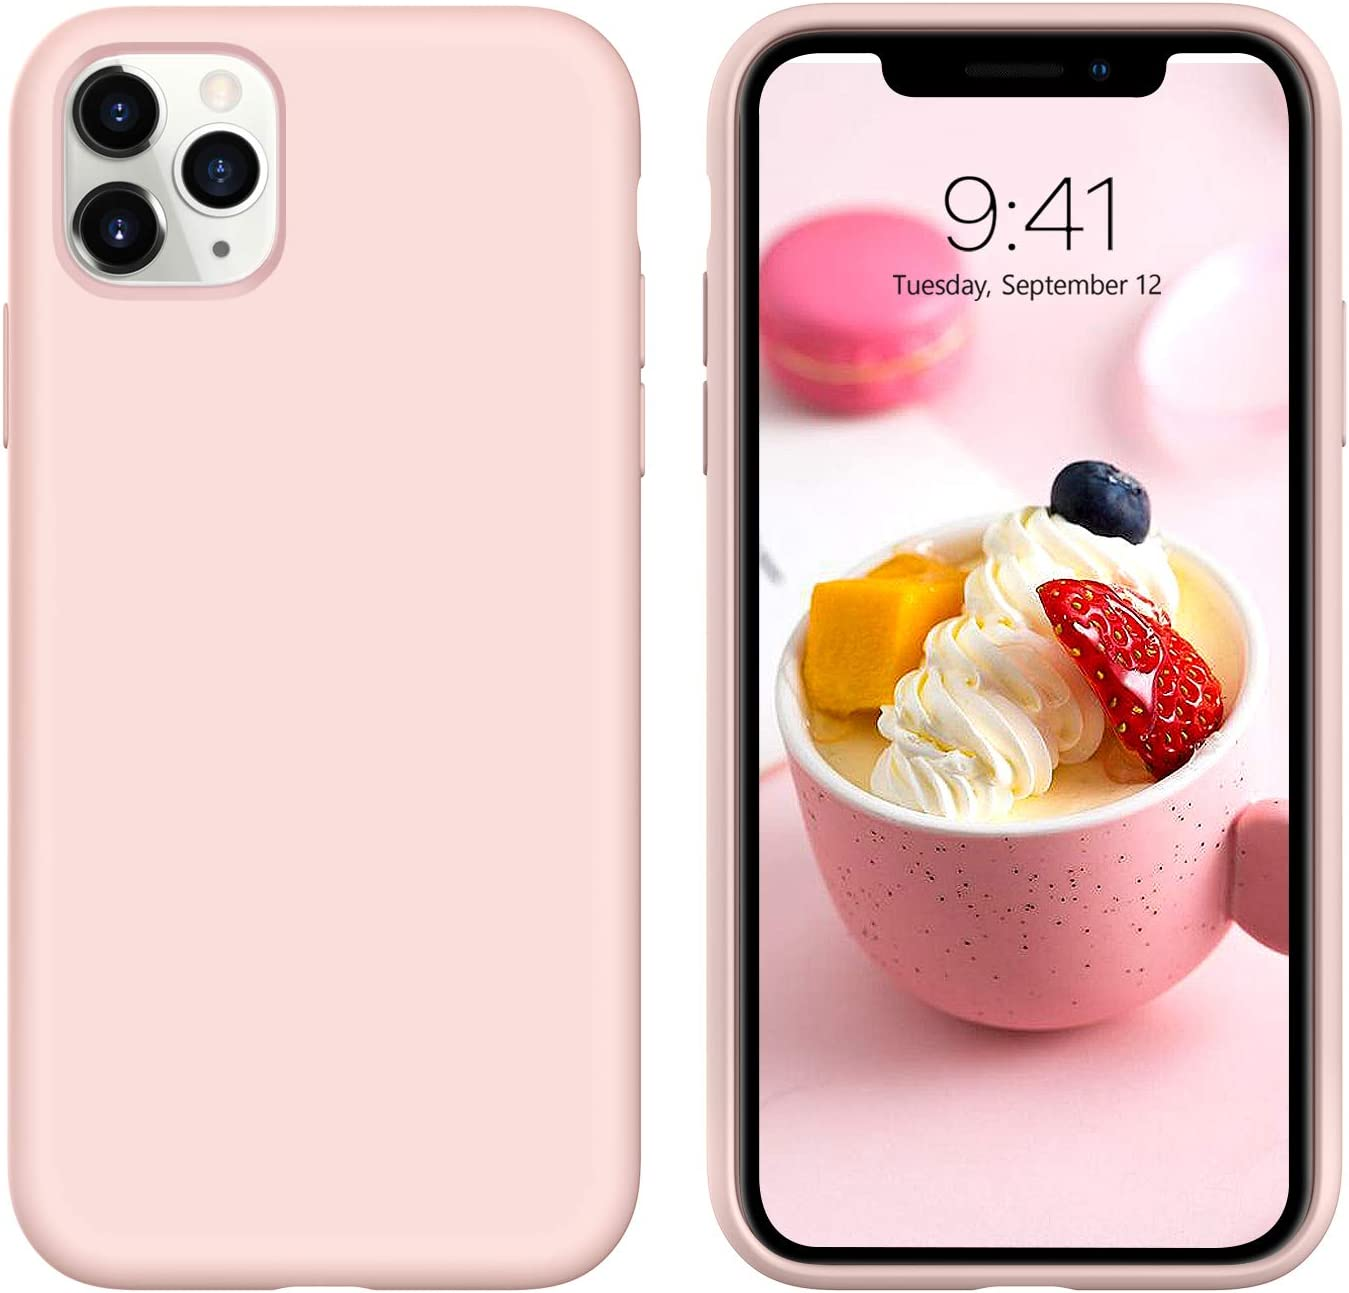 """iPhone 11 Pro Max Case, DUEDUE Liquid Silicone Soft Gel Rubber Slim Cover with Microfiber Cloth Lining Cushion Shockproof Full Body Protective Case for iPhone 11 Pro Max 6.5"""" 2019,Pink Sand"""